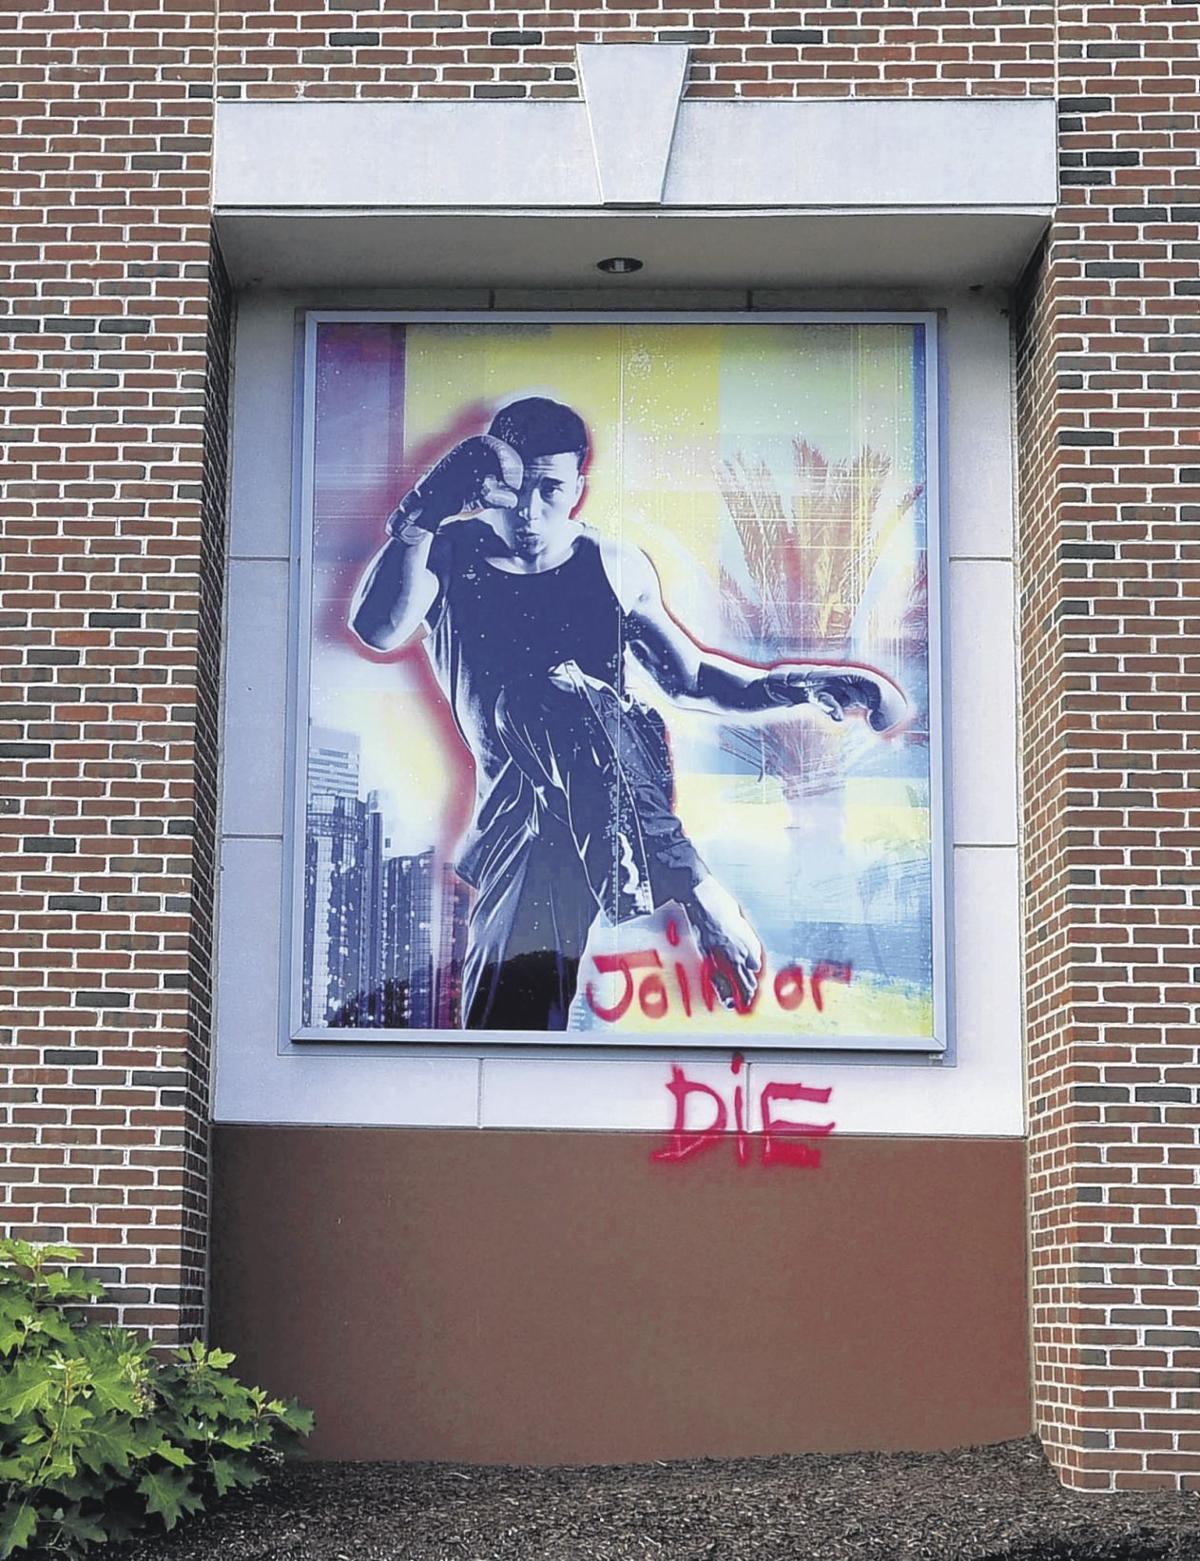 vulgar images spray painted on la fitness building in sw south